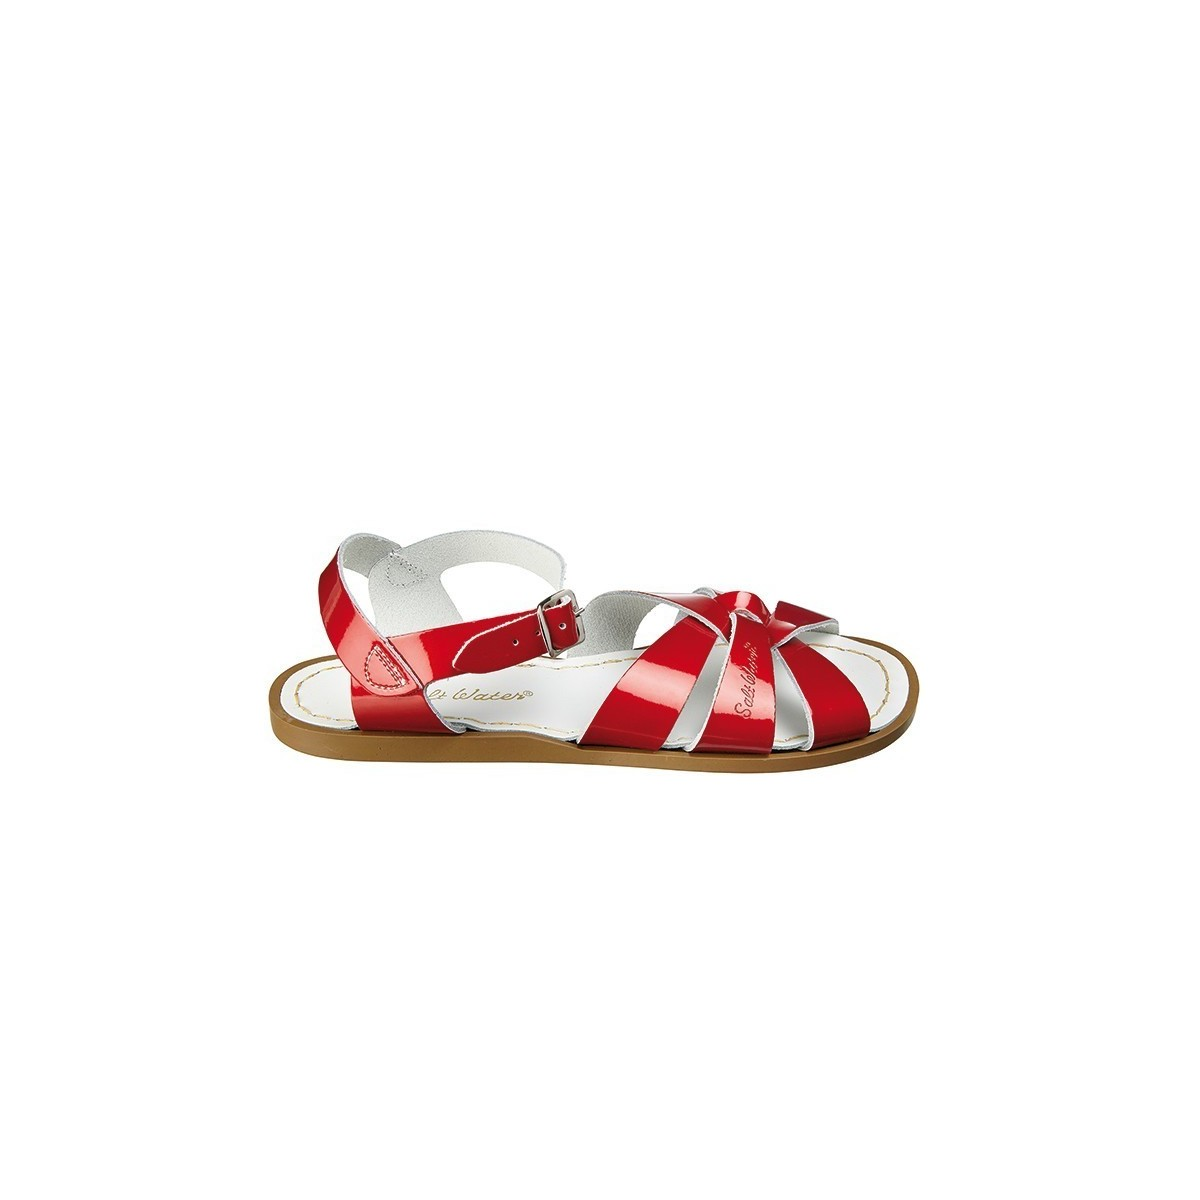 Sandale Salt Water Original cuir candy red